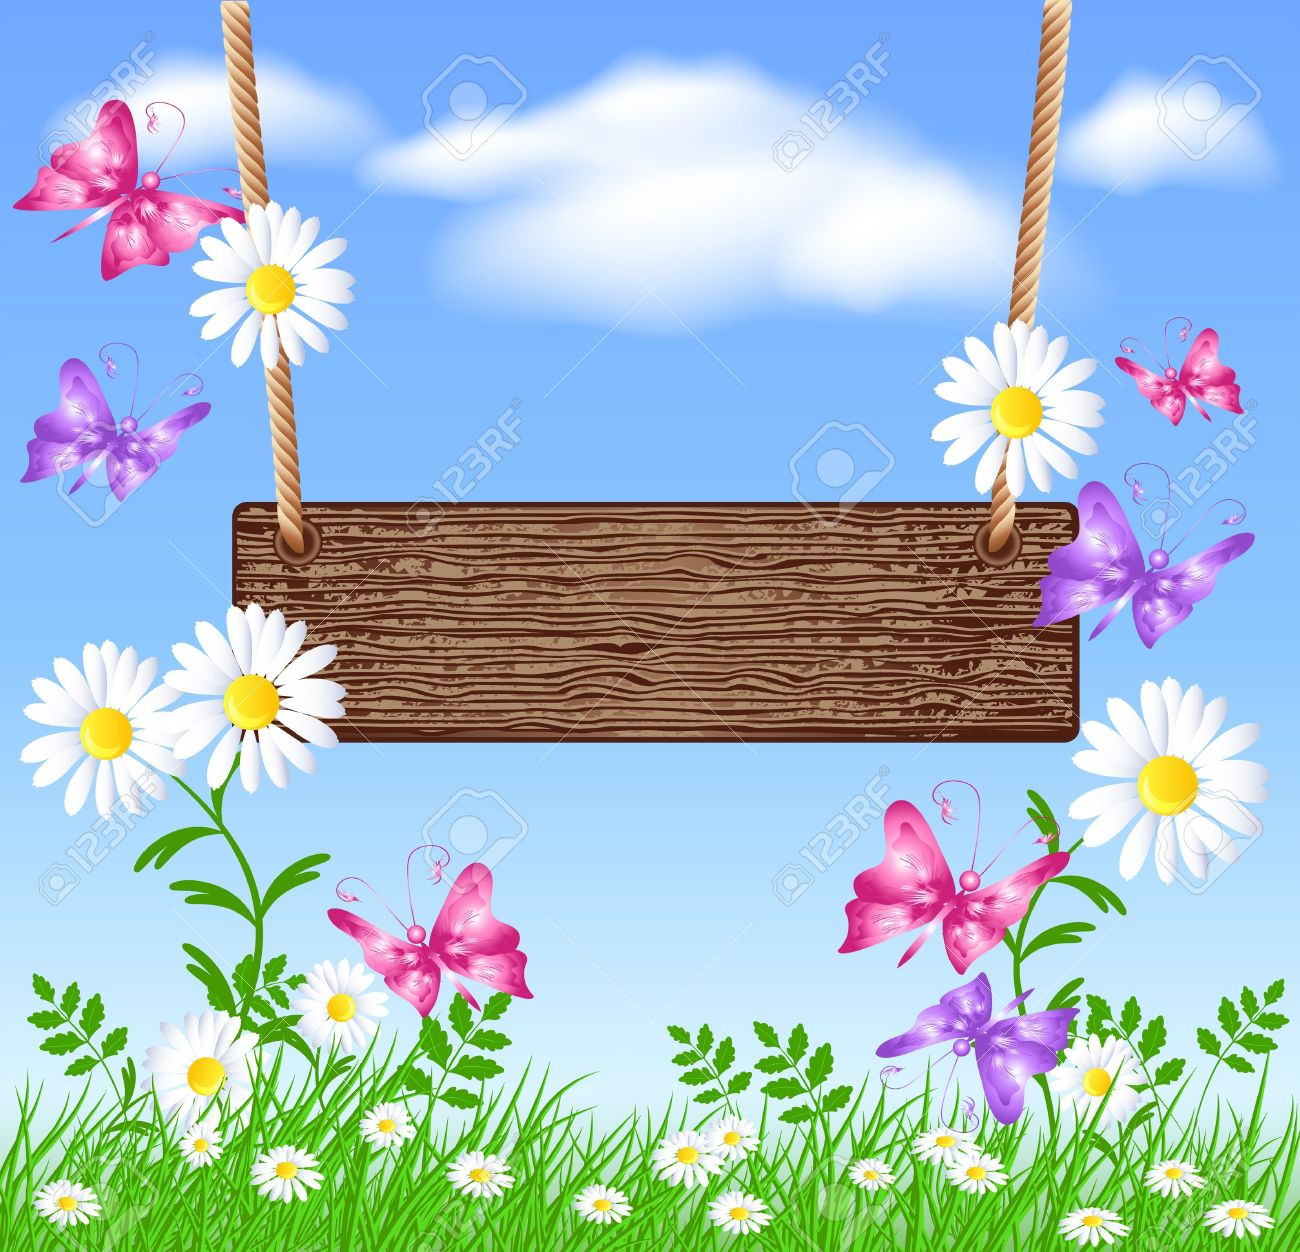 Wooden signboard on the meadow with daisies Stock Vector - 13419091